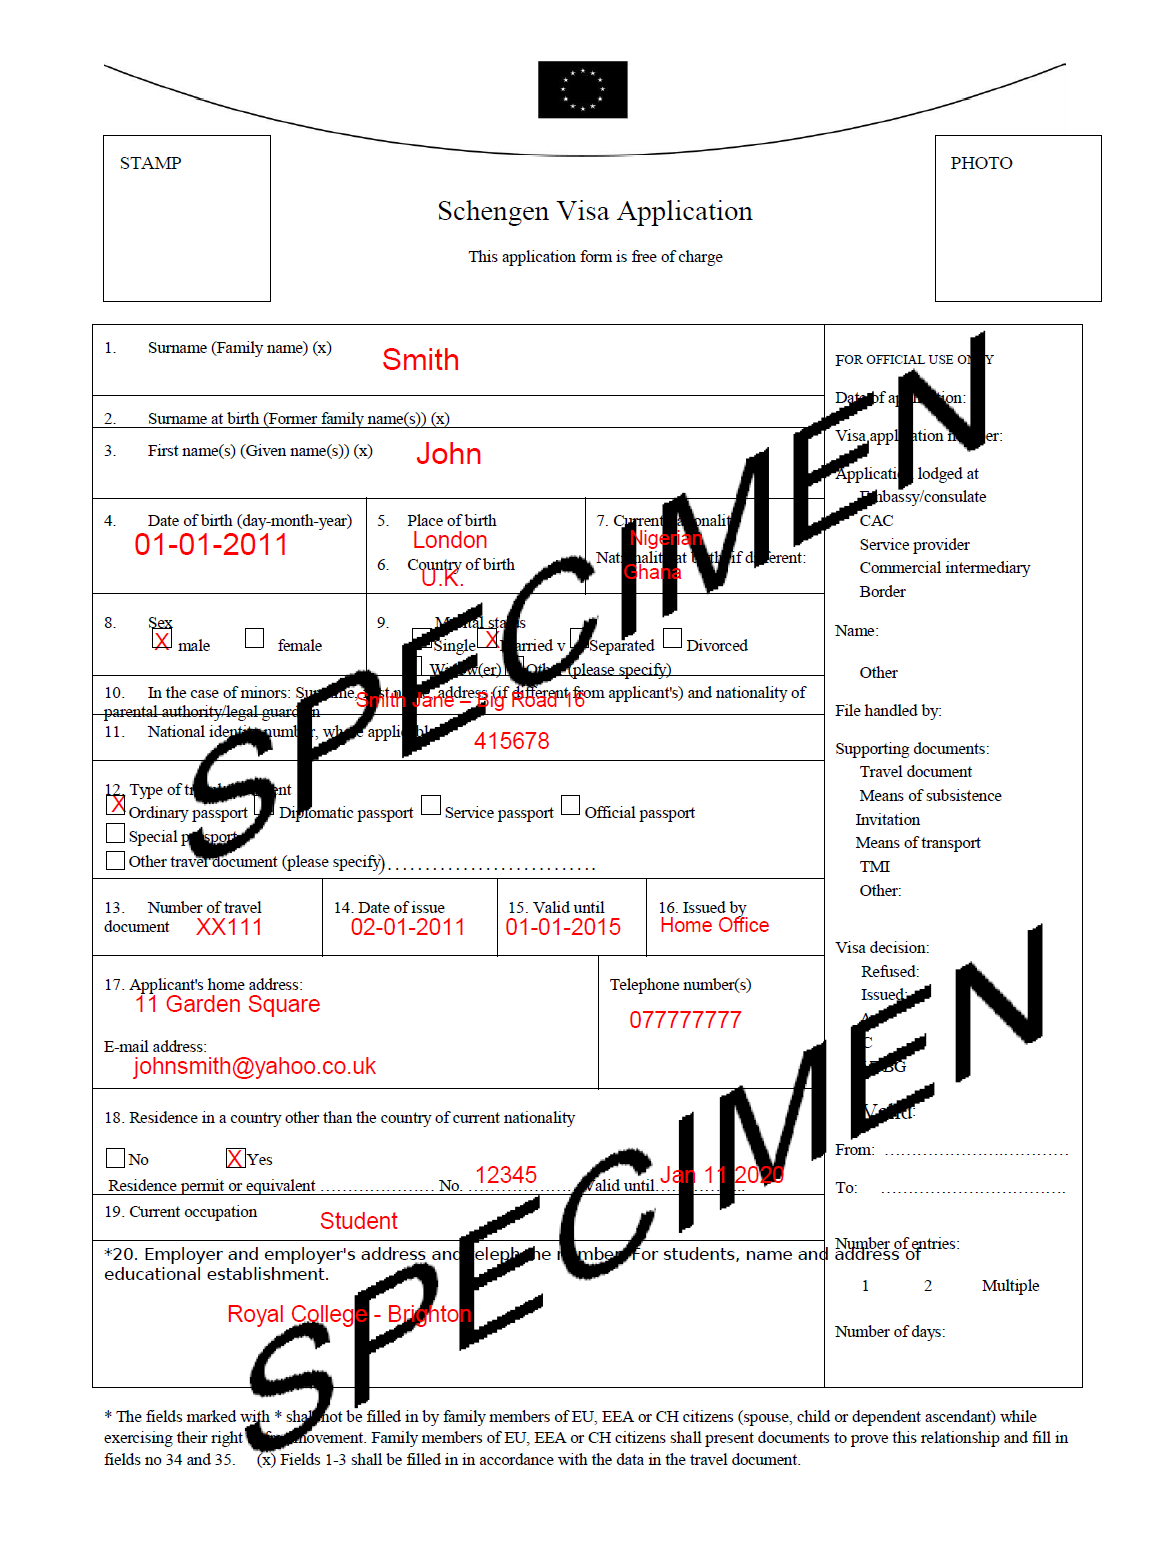 9041be89fe48c07dd5fde6ba01122f4ecf4bf1d0 Visa Application Form Of Hungary on nomination form, insurance form, doctor physical examination form, travel itinerary form, invitation letter form, visa ds-160 form sample, green card form, tax form, visa documents folder, passport renewal form, visa application letter, visa invitation form, work permit form, job search form, visa passport,